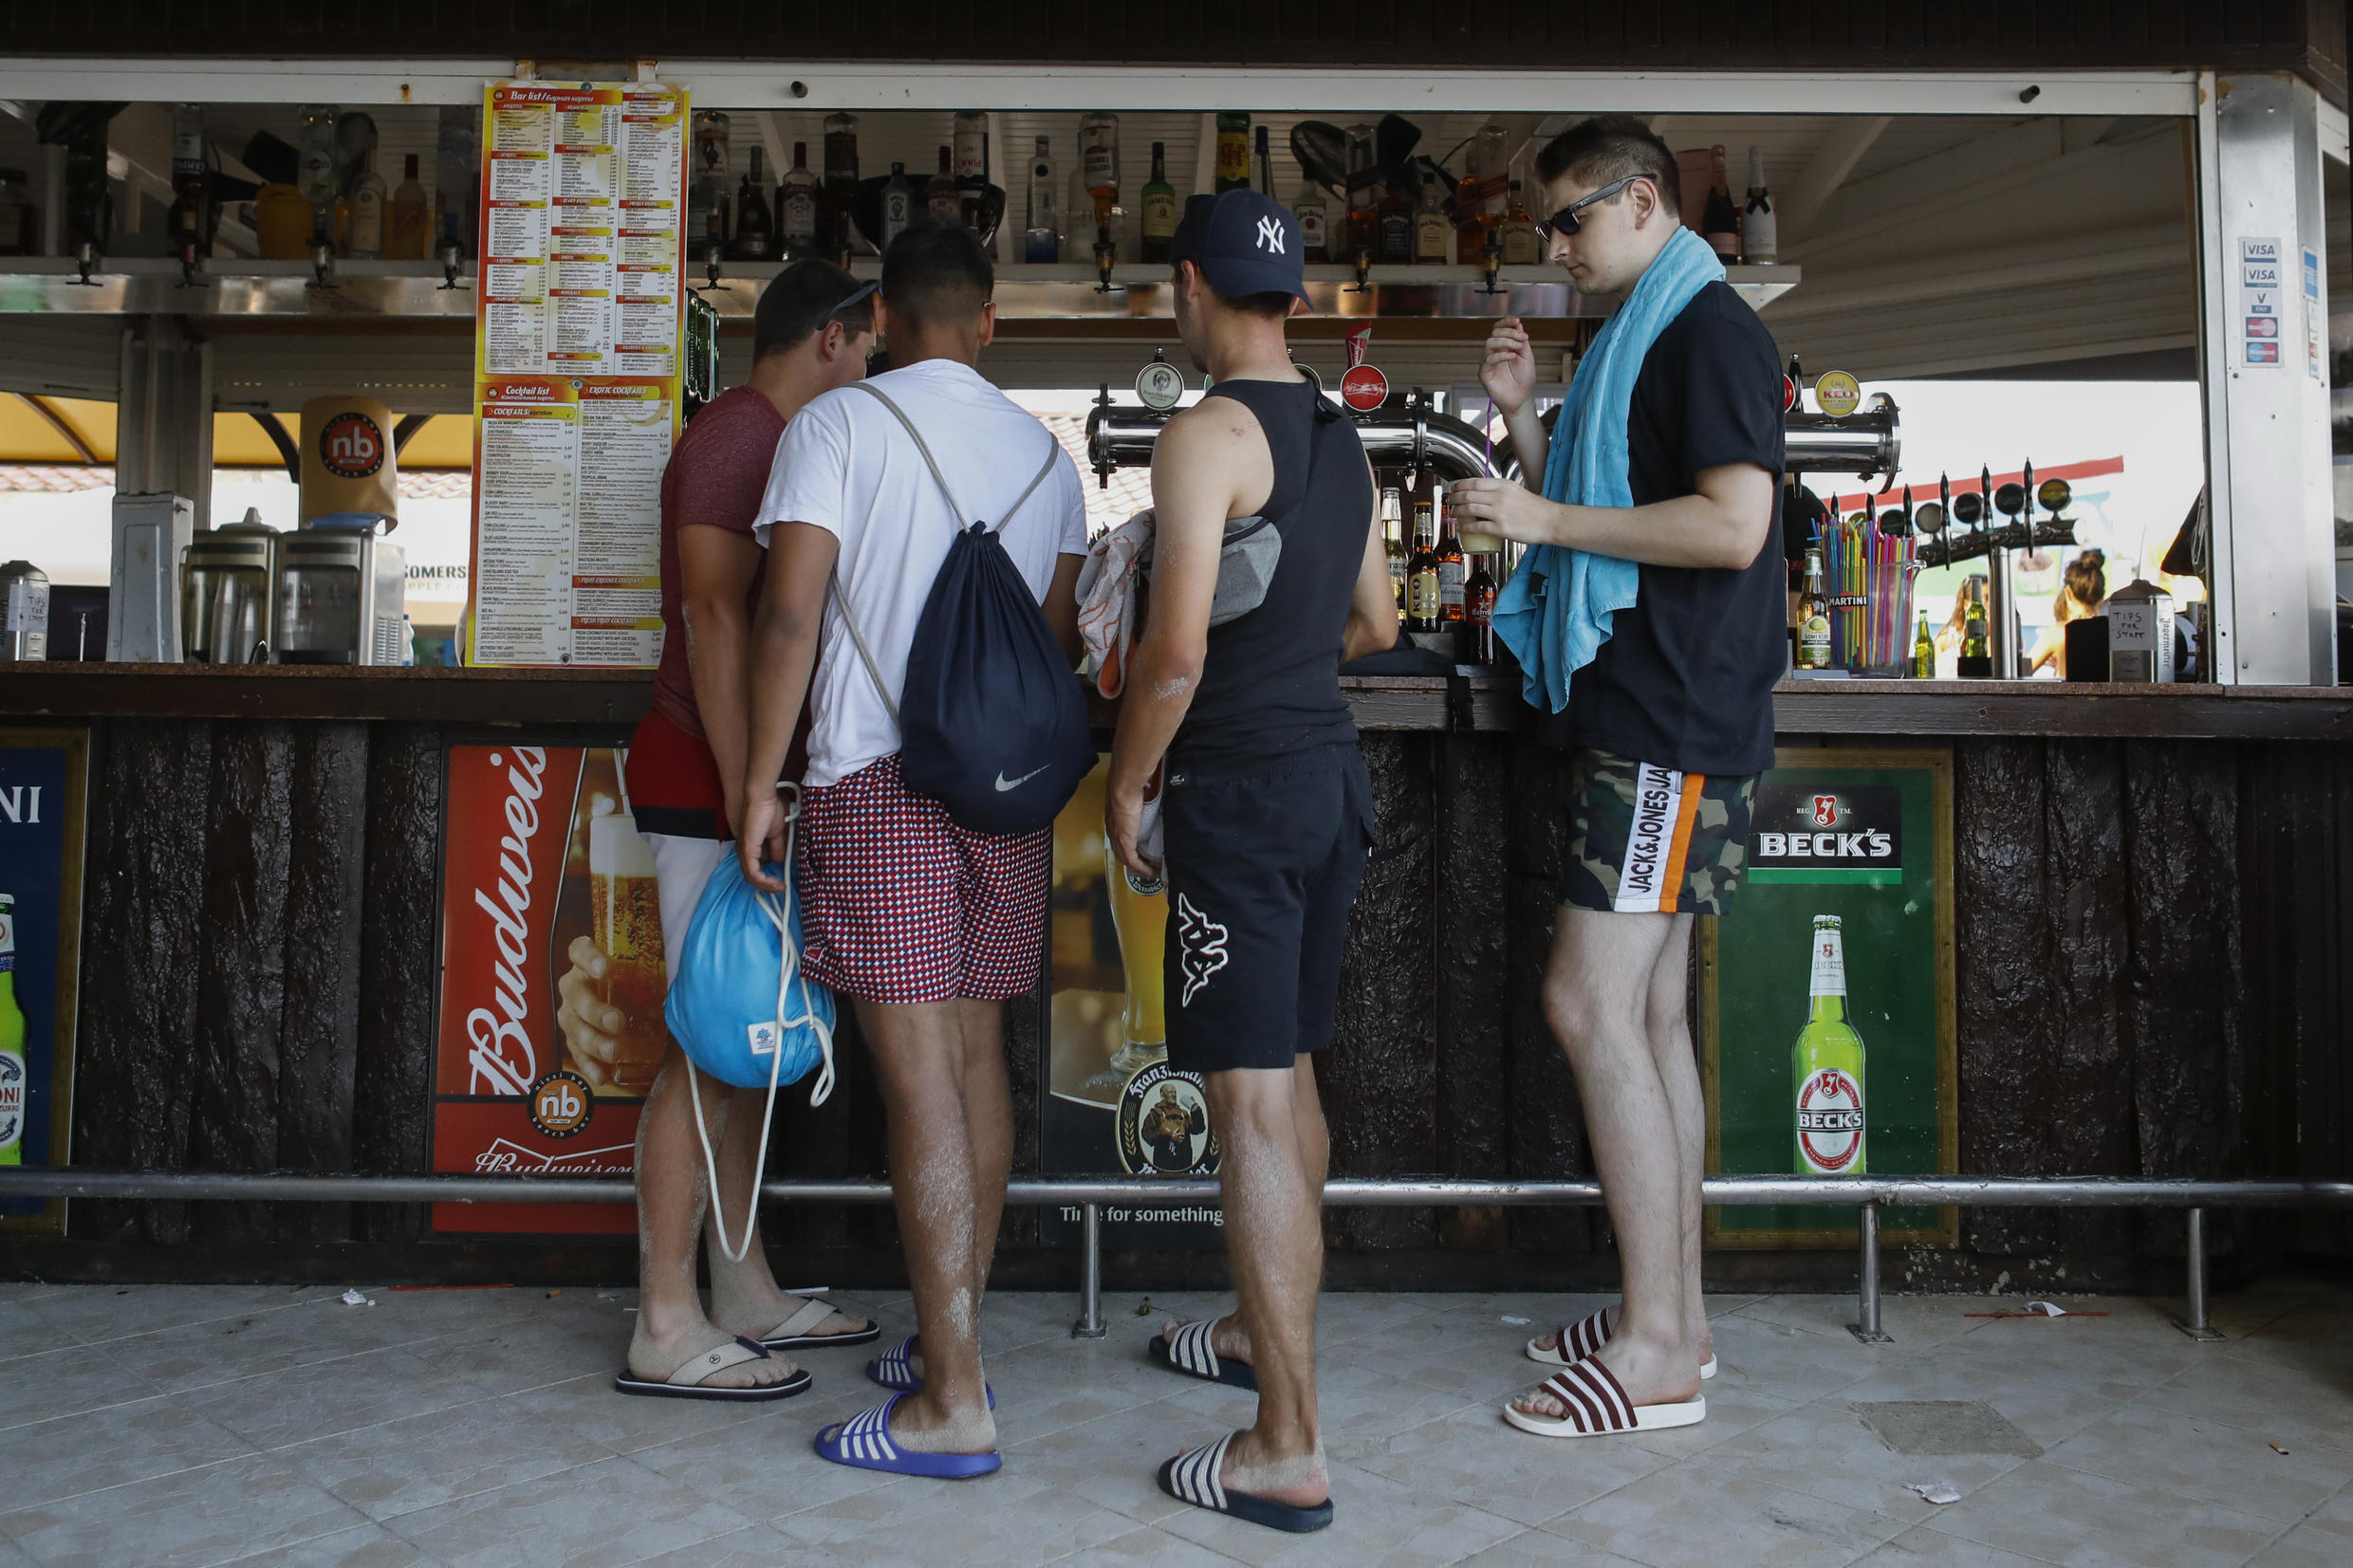 Tourists buy drinks at a bar in the Cypriot resort town of Ayia Napa on July 18, 2019.